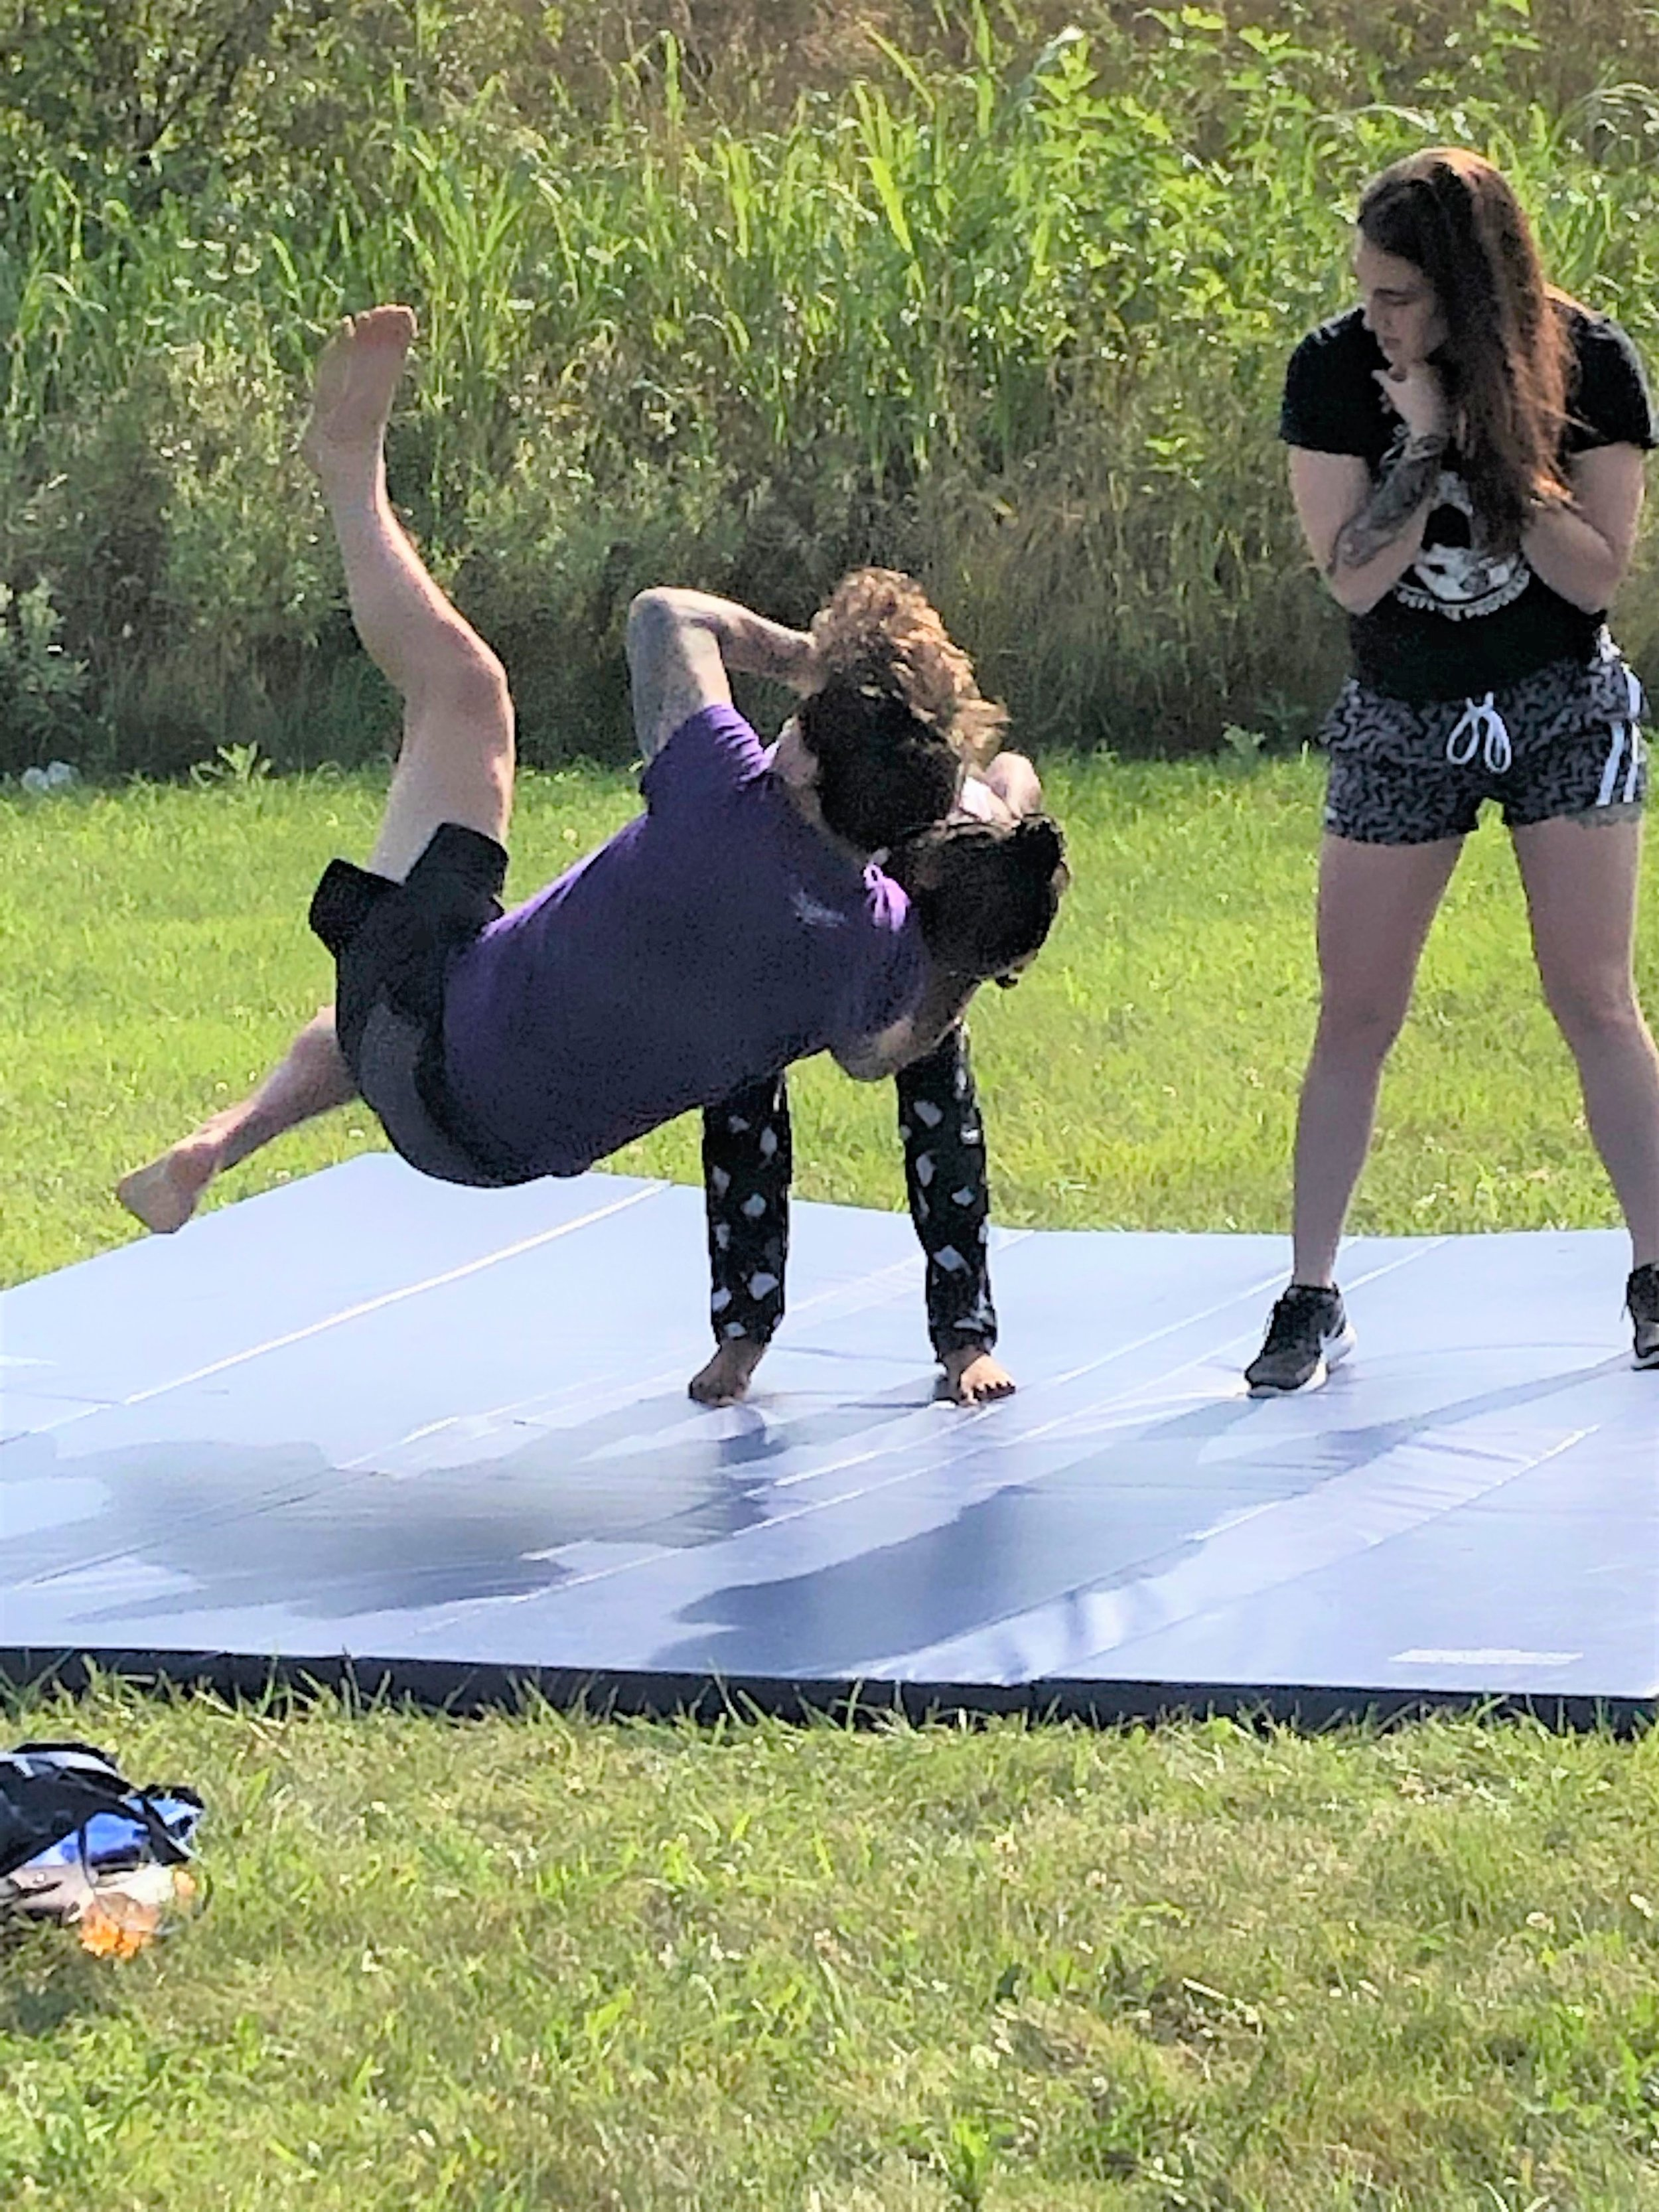 Columbus State Community College provided a self defense demonstration as part of a Community Resource Fair at Homeport's Georges Creek community on July 24. Scores of residents met with multiple vendors ranging from health care to resume writing.